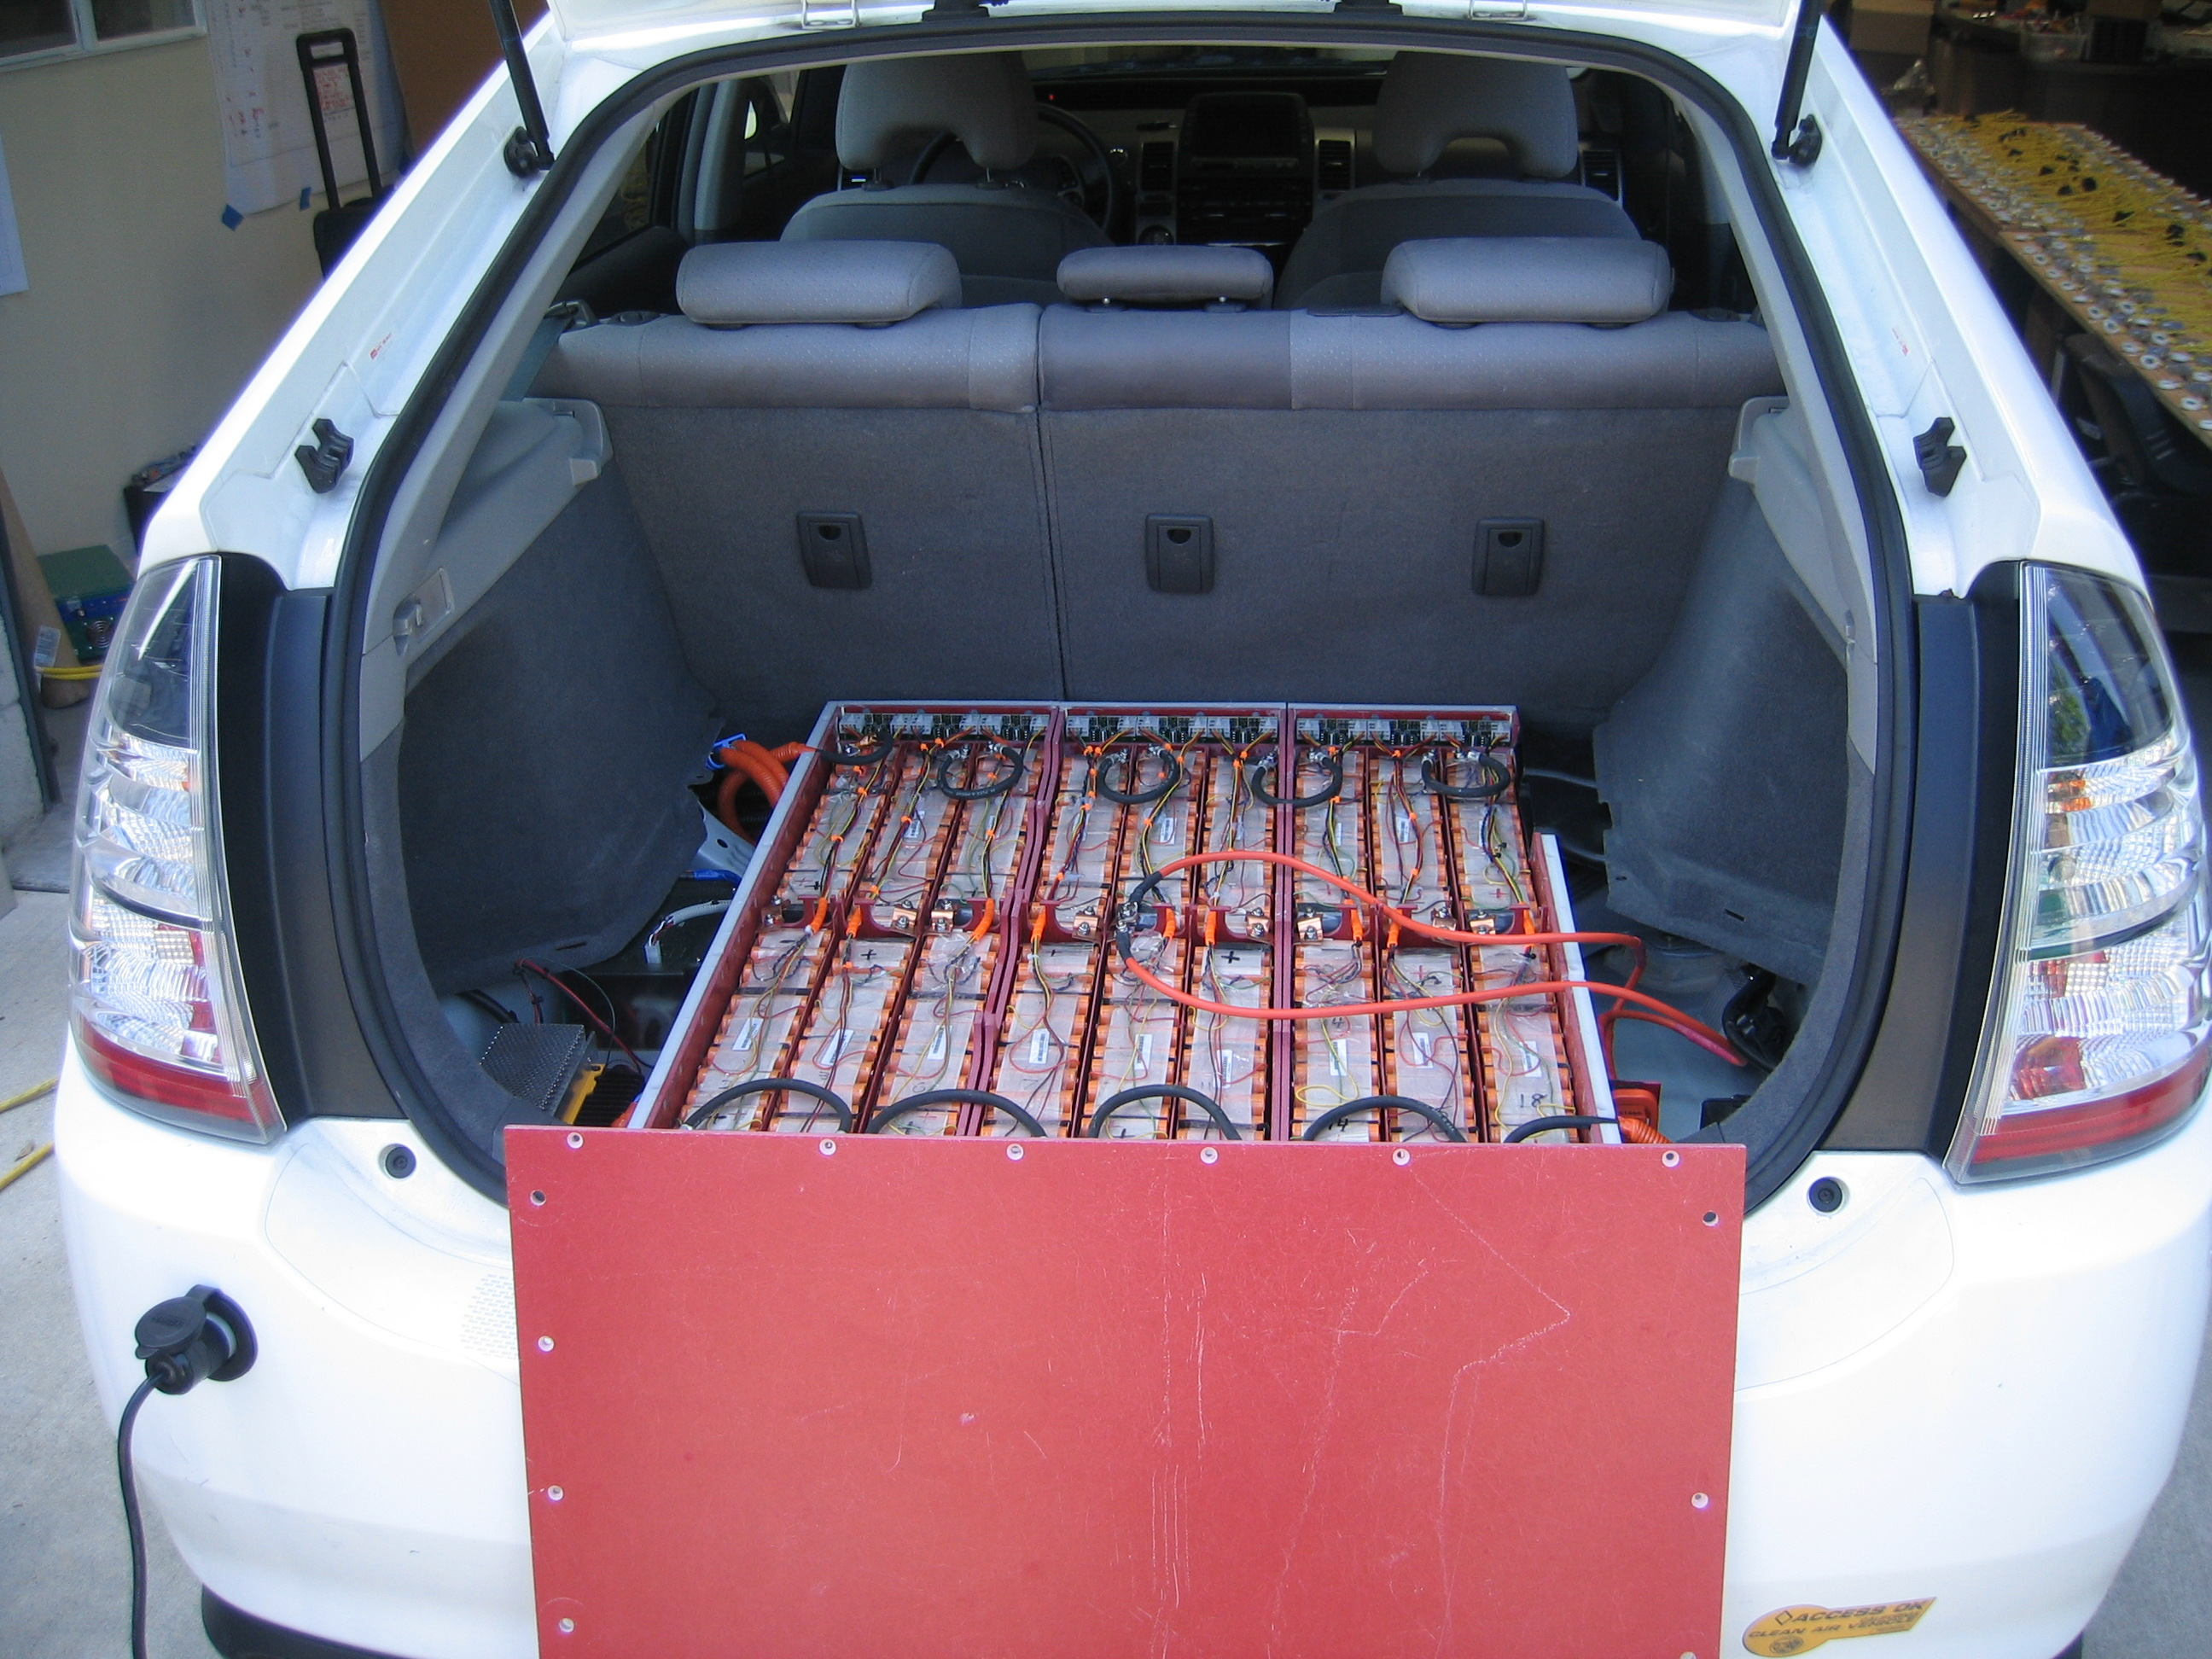 Prius Car Battery Replacement Cost